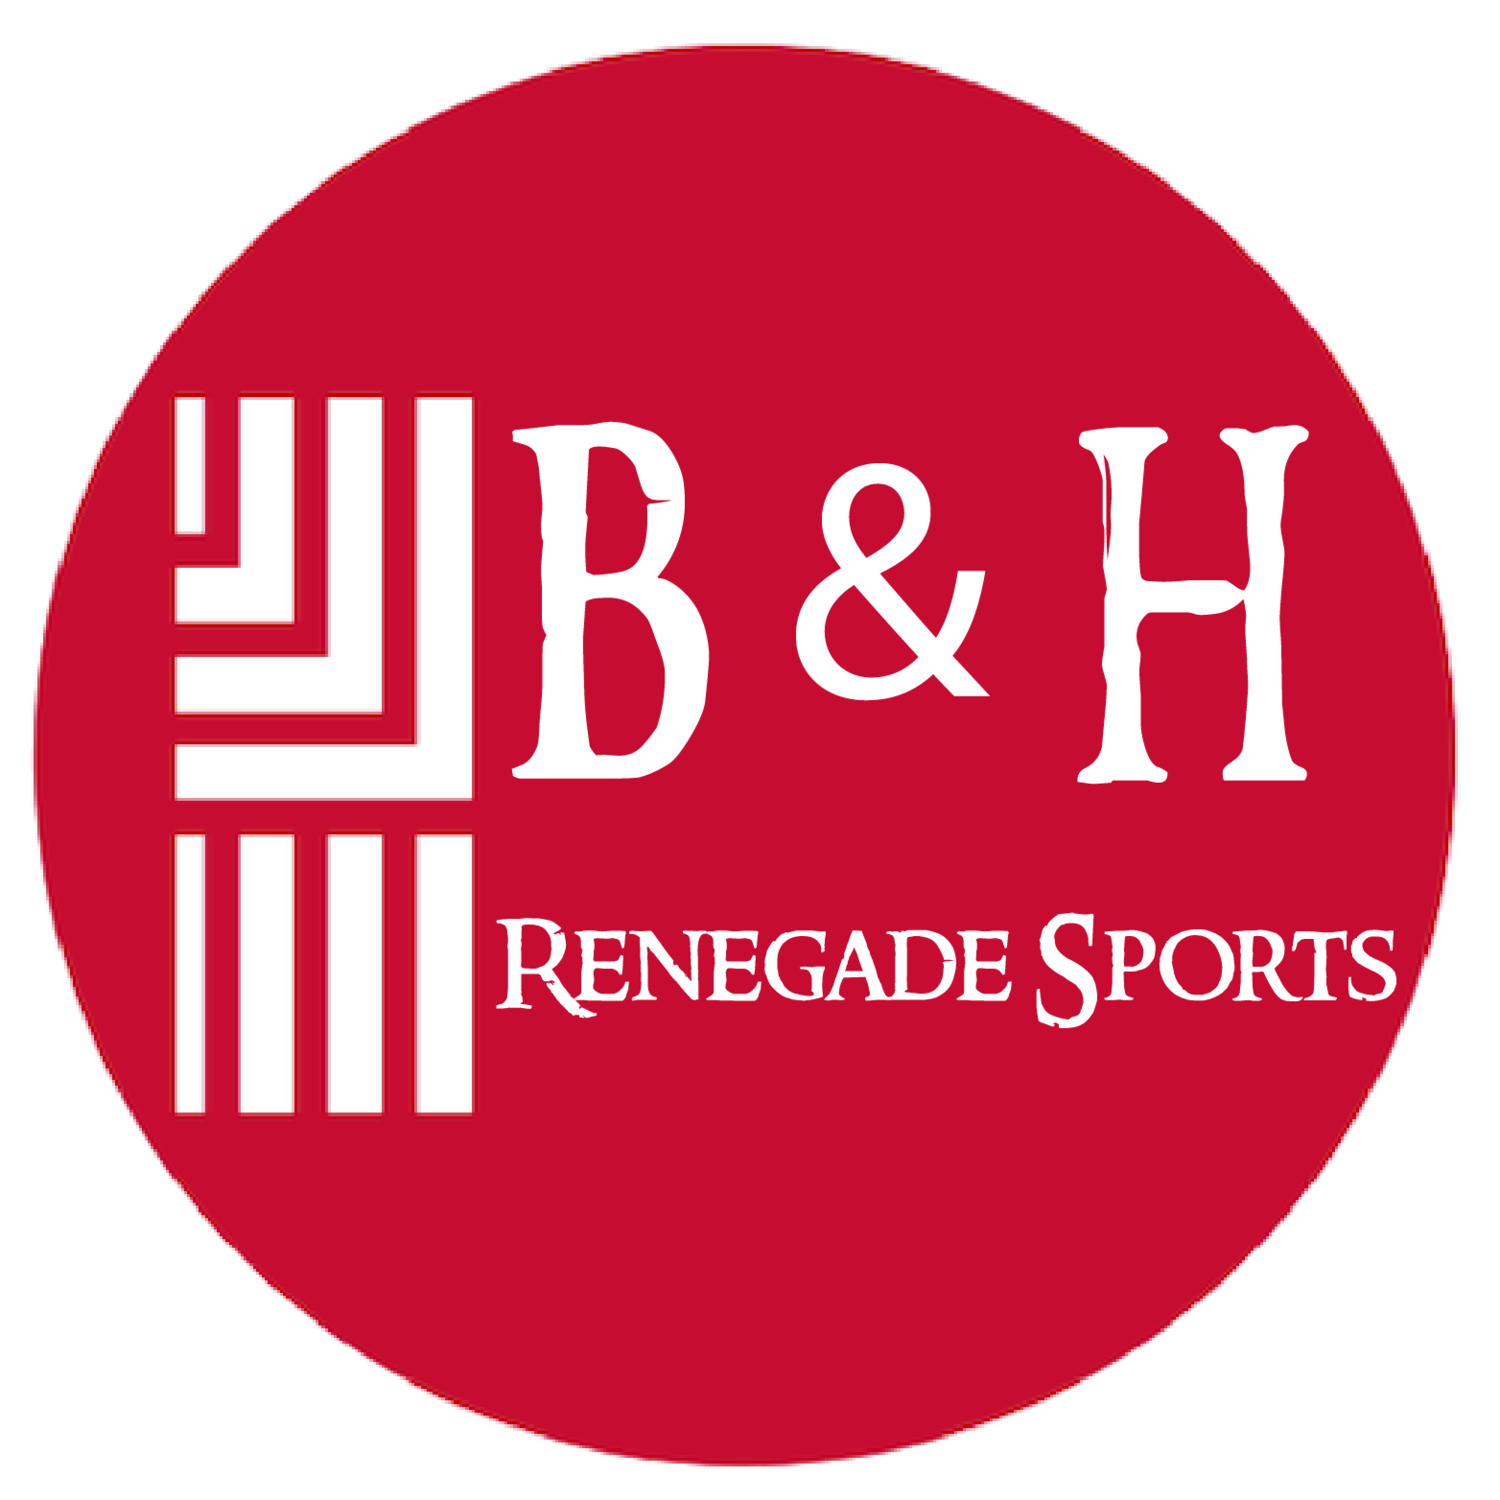 B&H Renegade Sports